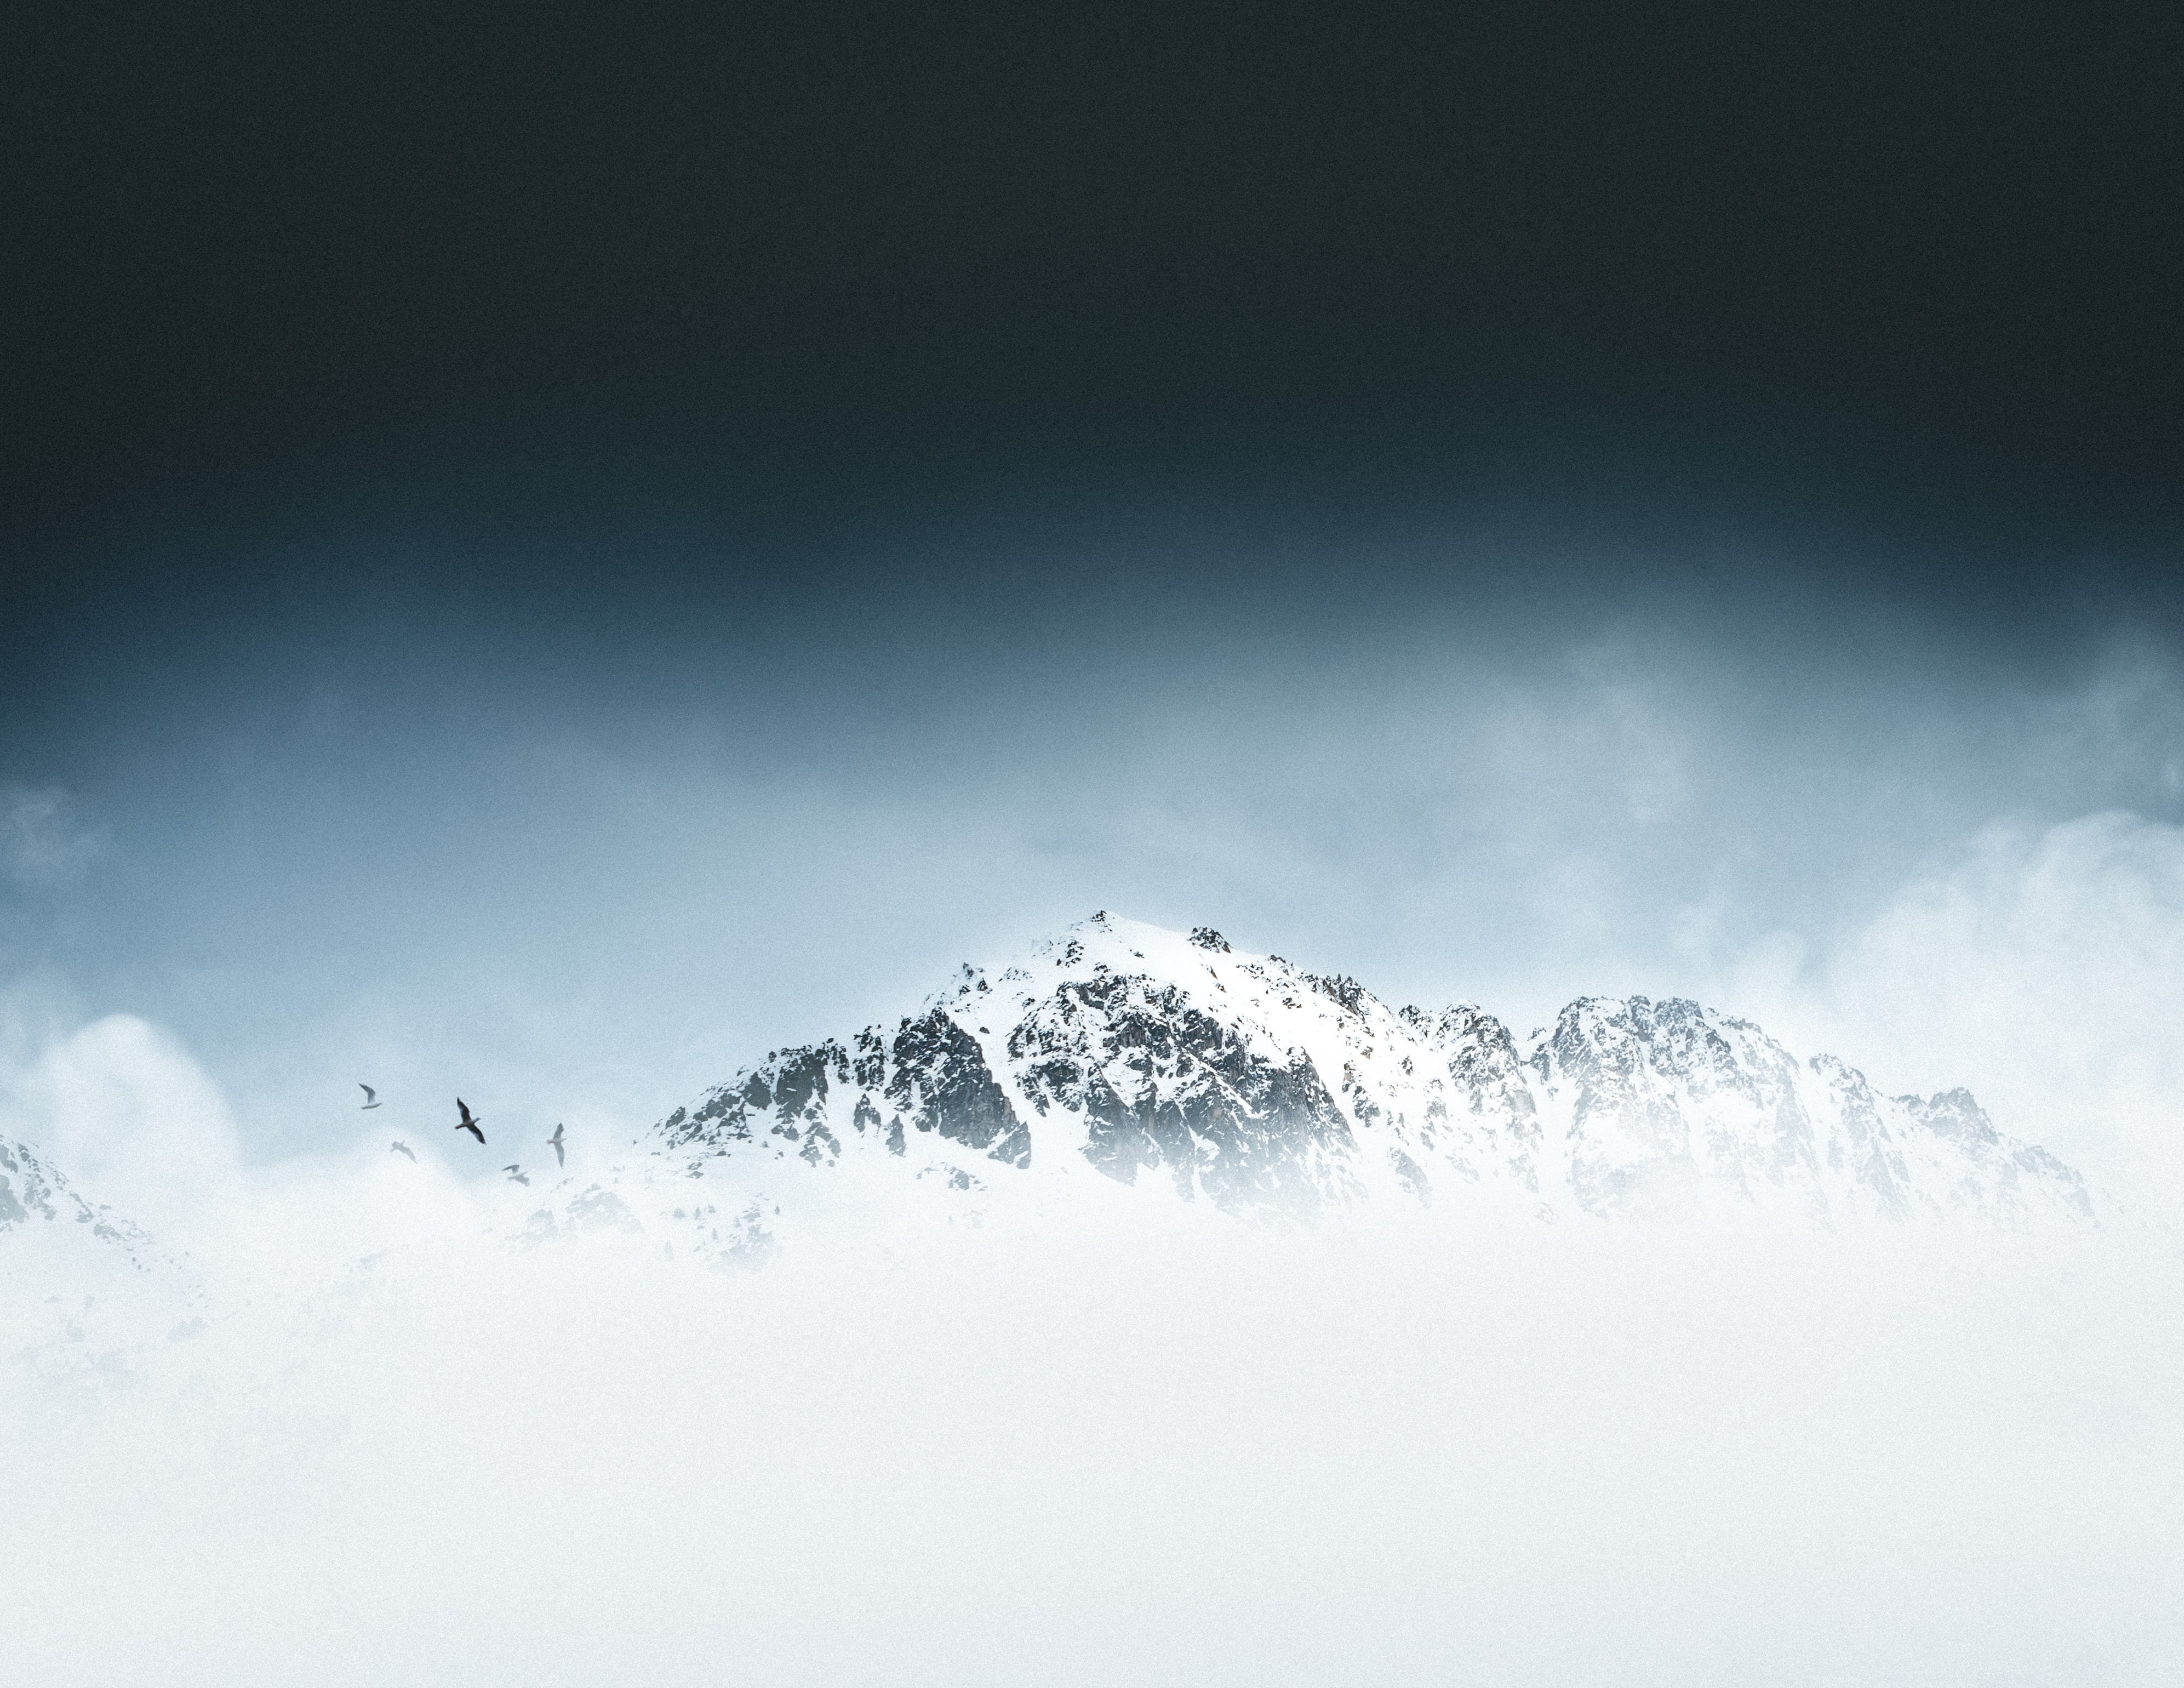 snow mountain in landscape photography